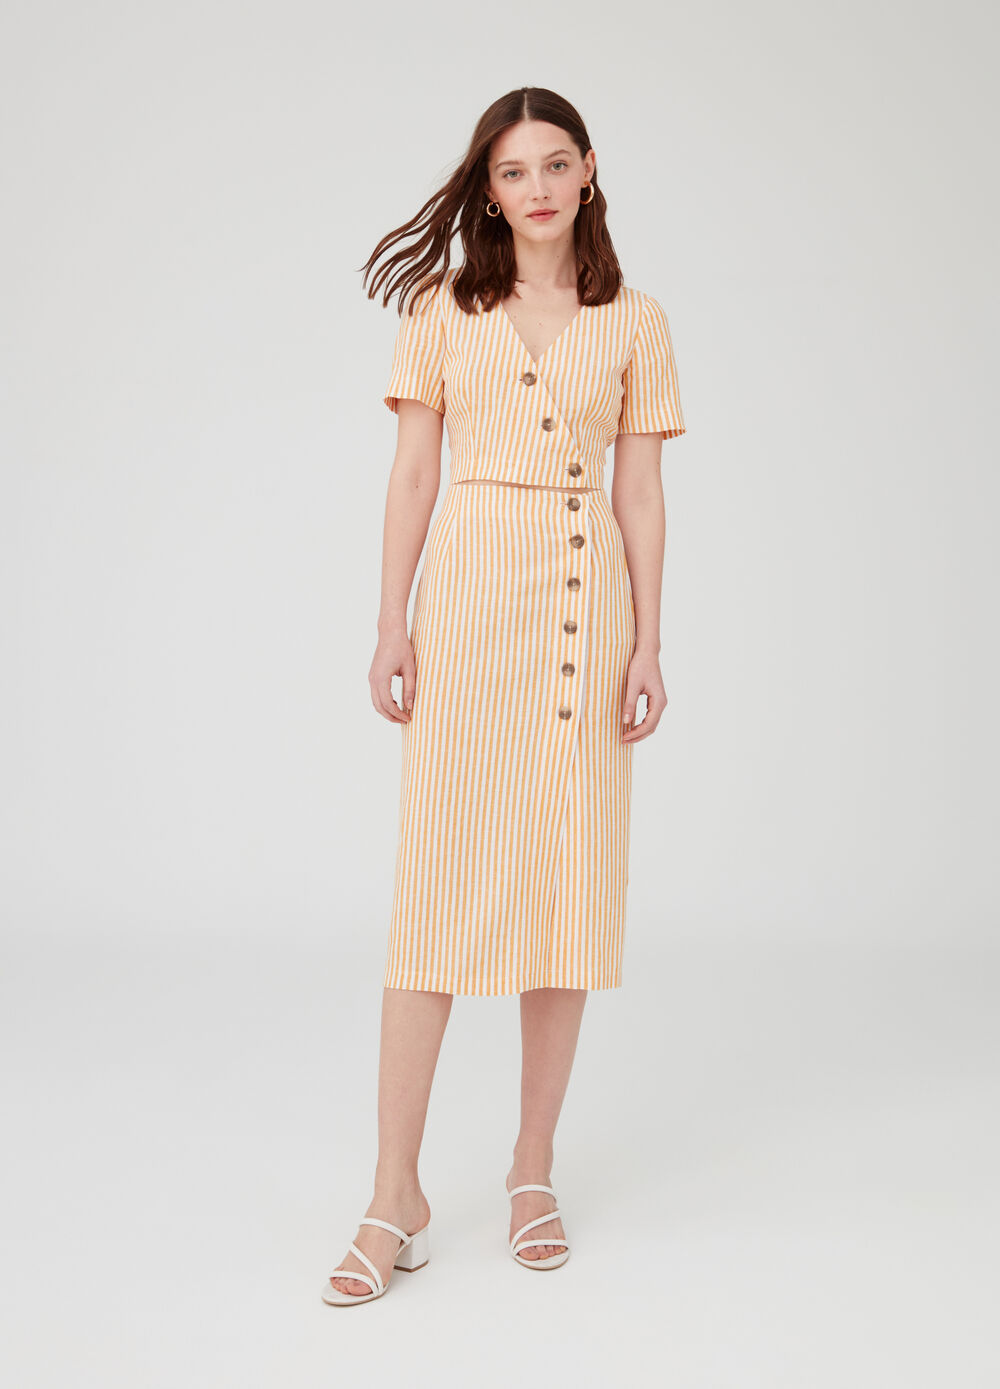 High-waisted viscose and linen skirt with stripes